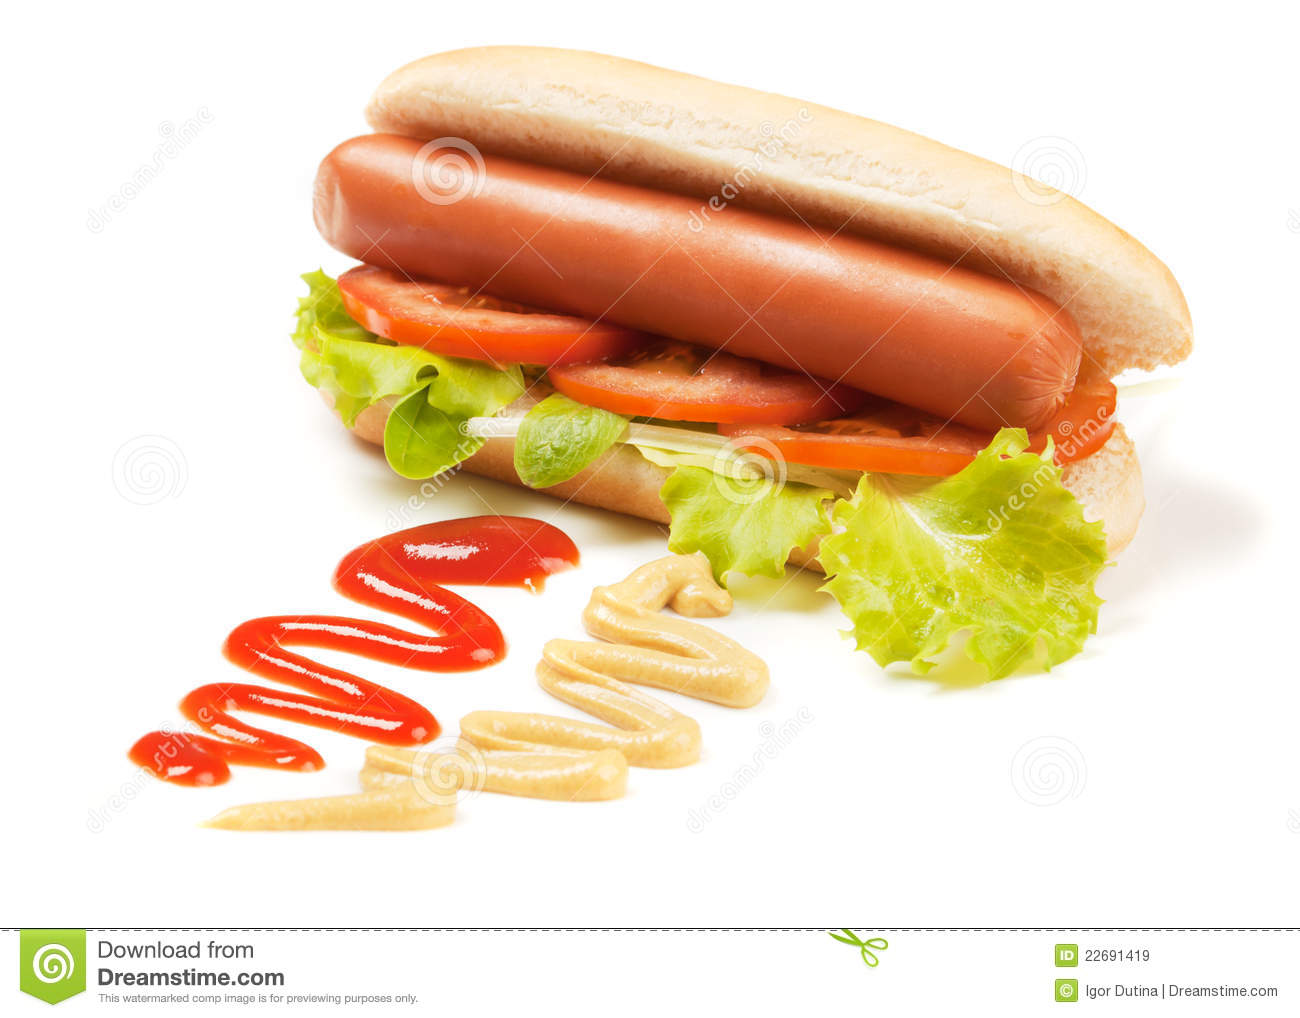 Hot Dog With Lettuce And Tomato